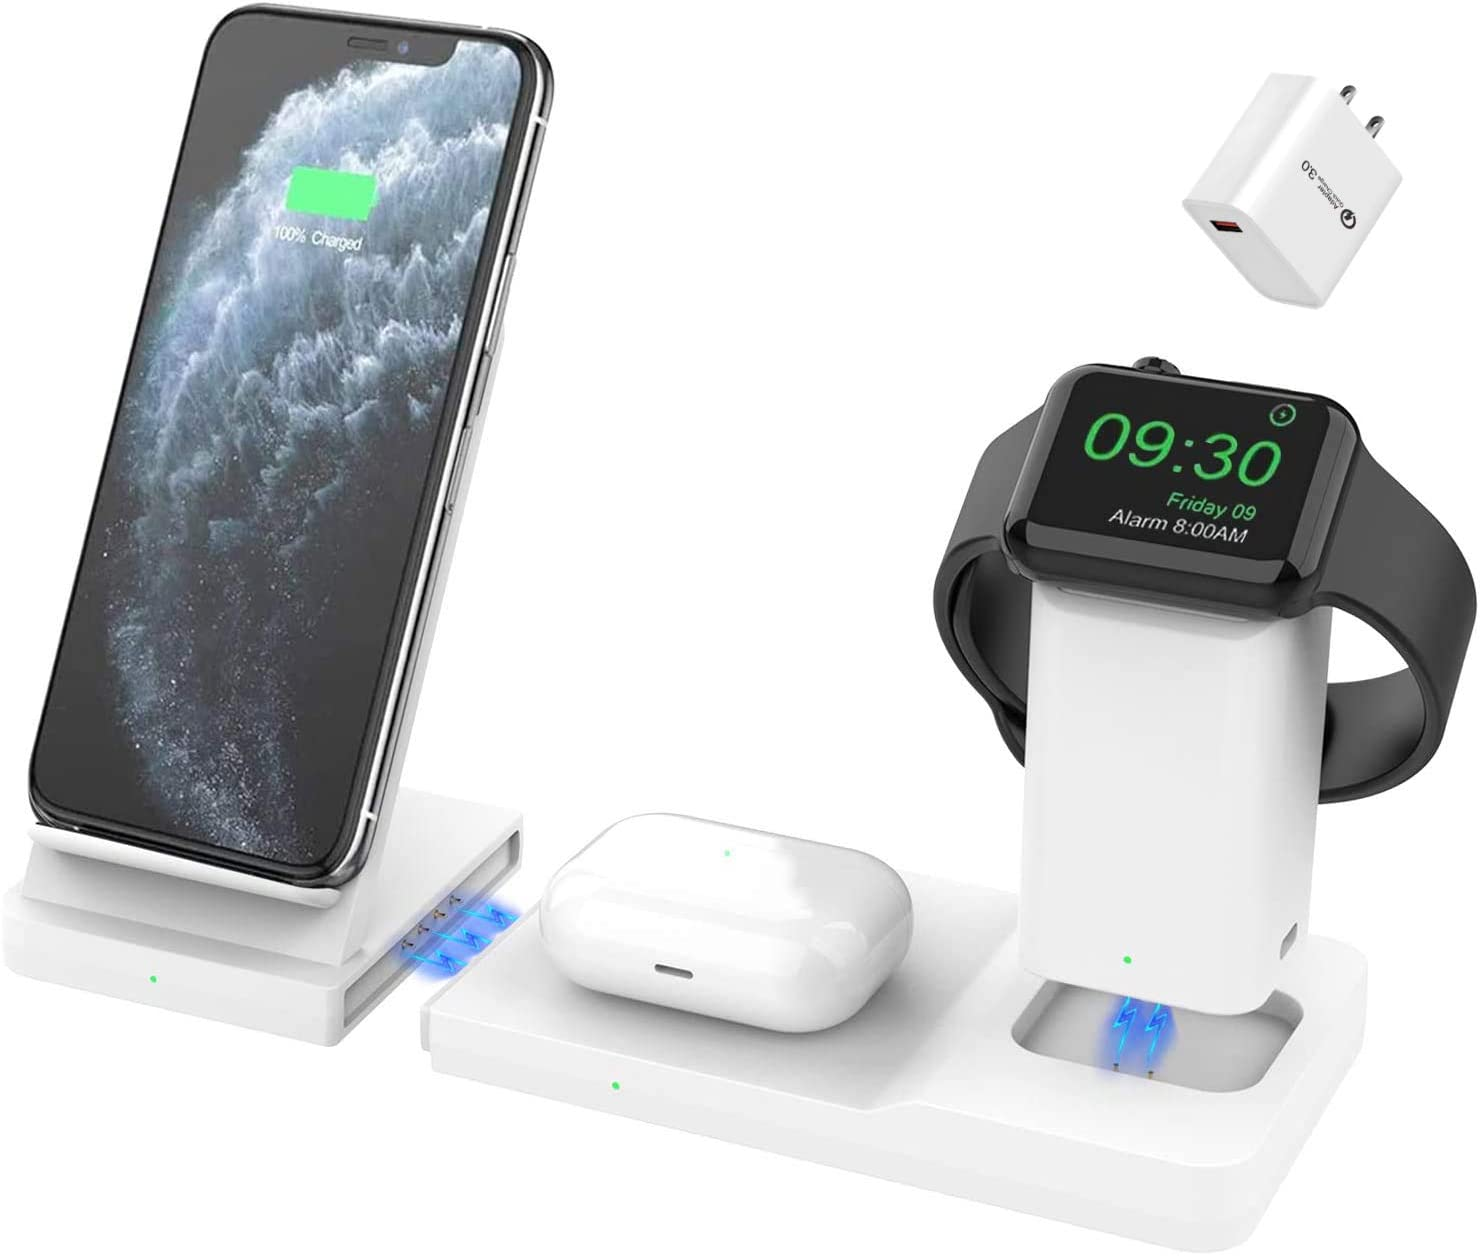 Hoidokly Wireless Charger Fast 3 in 1 Charging Station Dock for Apple Watch AirPods Pro/2, Detachable and Magnetic 7.5W Qi Charging Stand for iPhone 11 Pro Max/SE 2/XR/XS/X/8 Plus White(with Adapter)